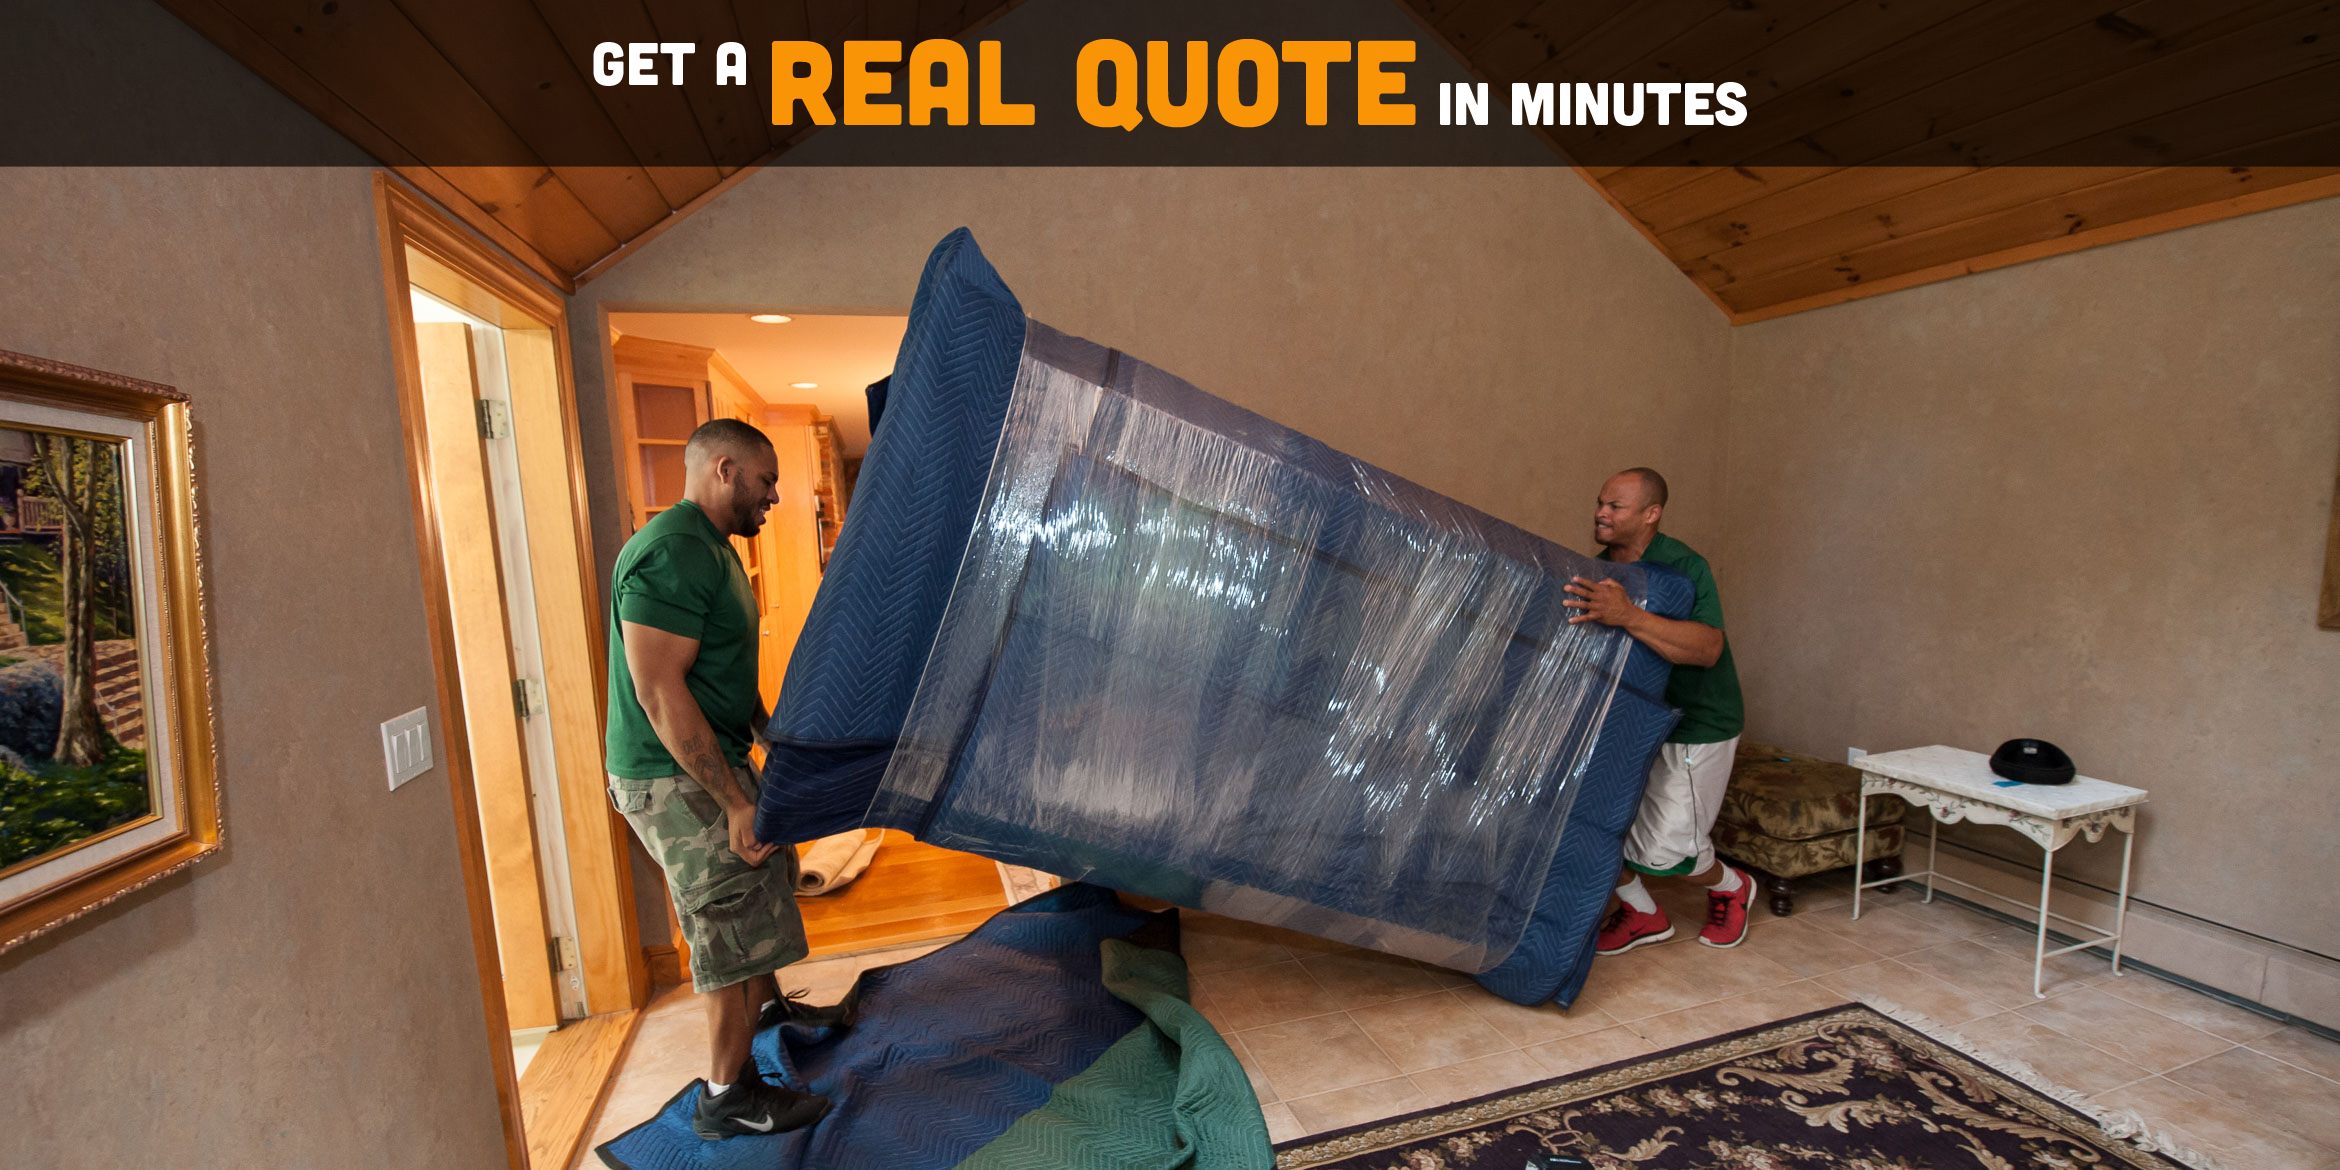 Get a Real Quote in Minutes